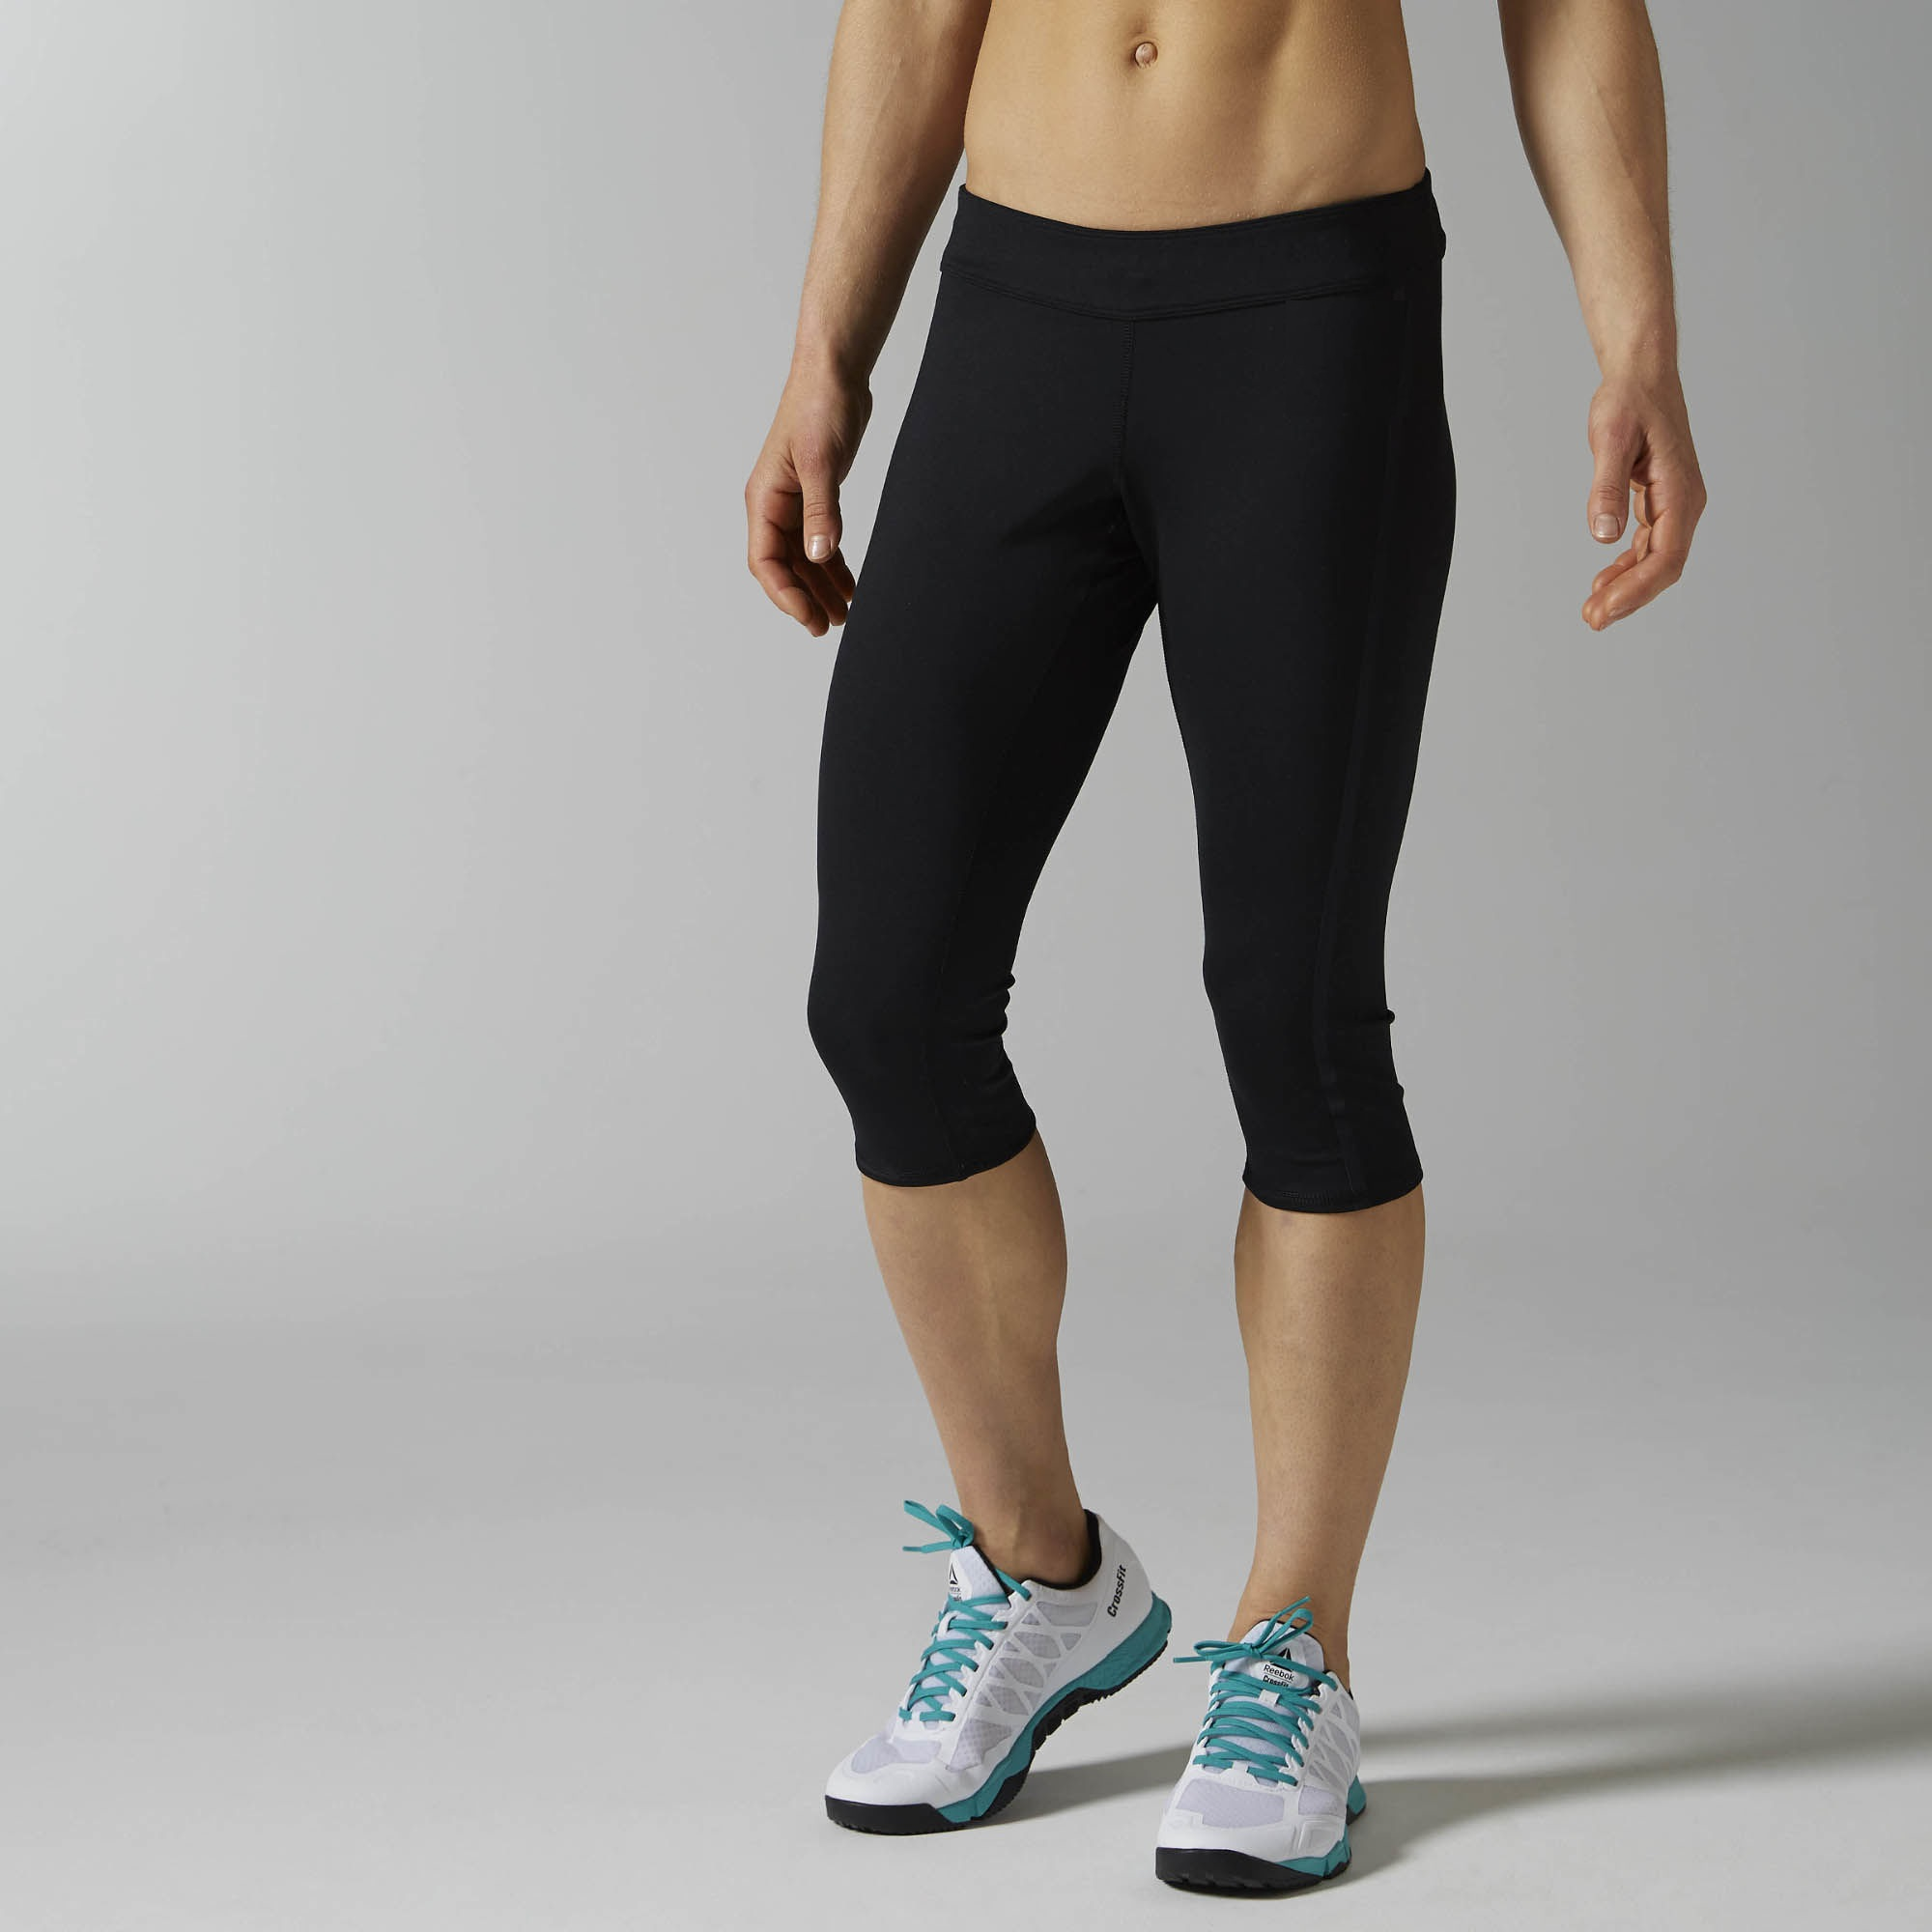 All Kinds of Workout Bottoms for Every Woman's Fitness Needs